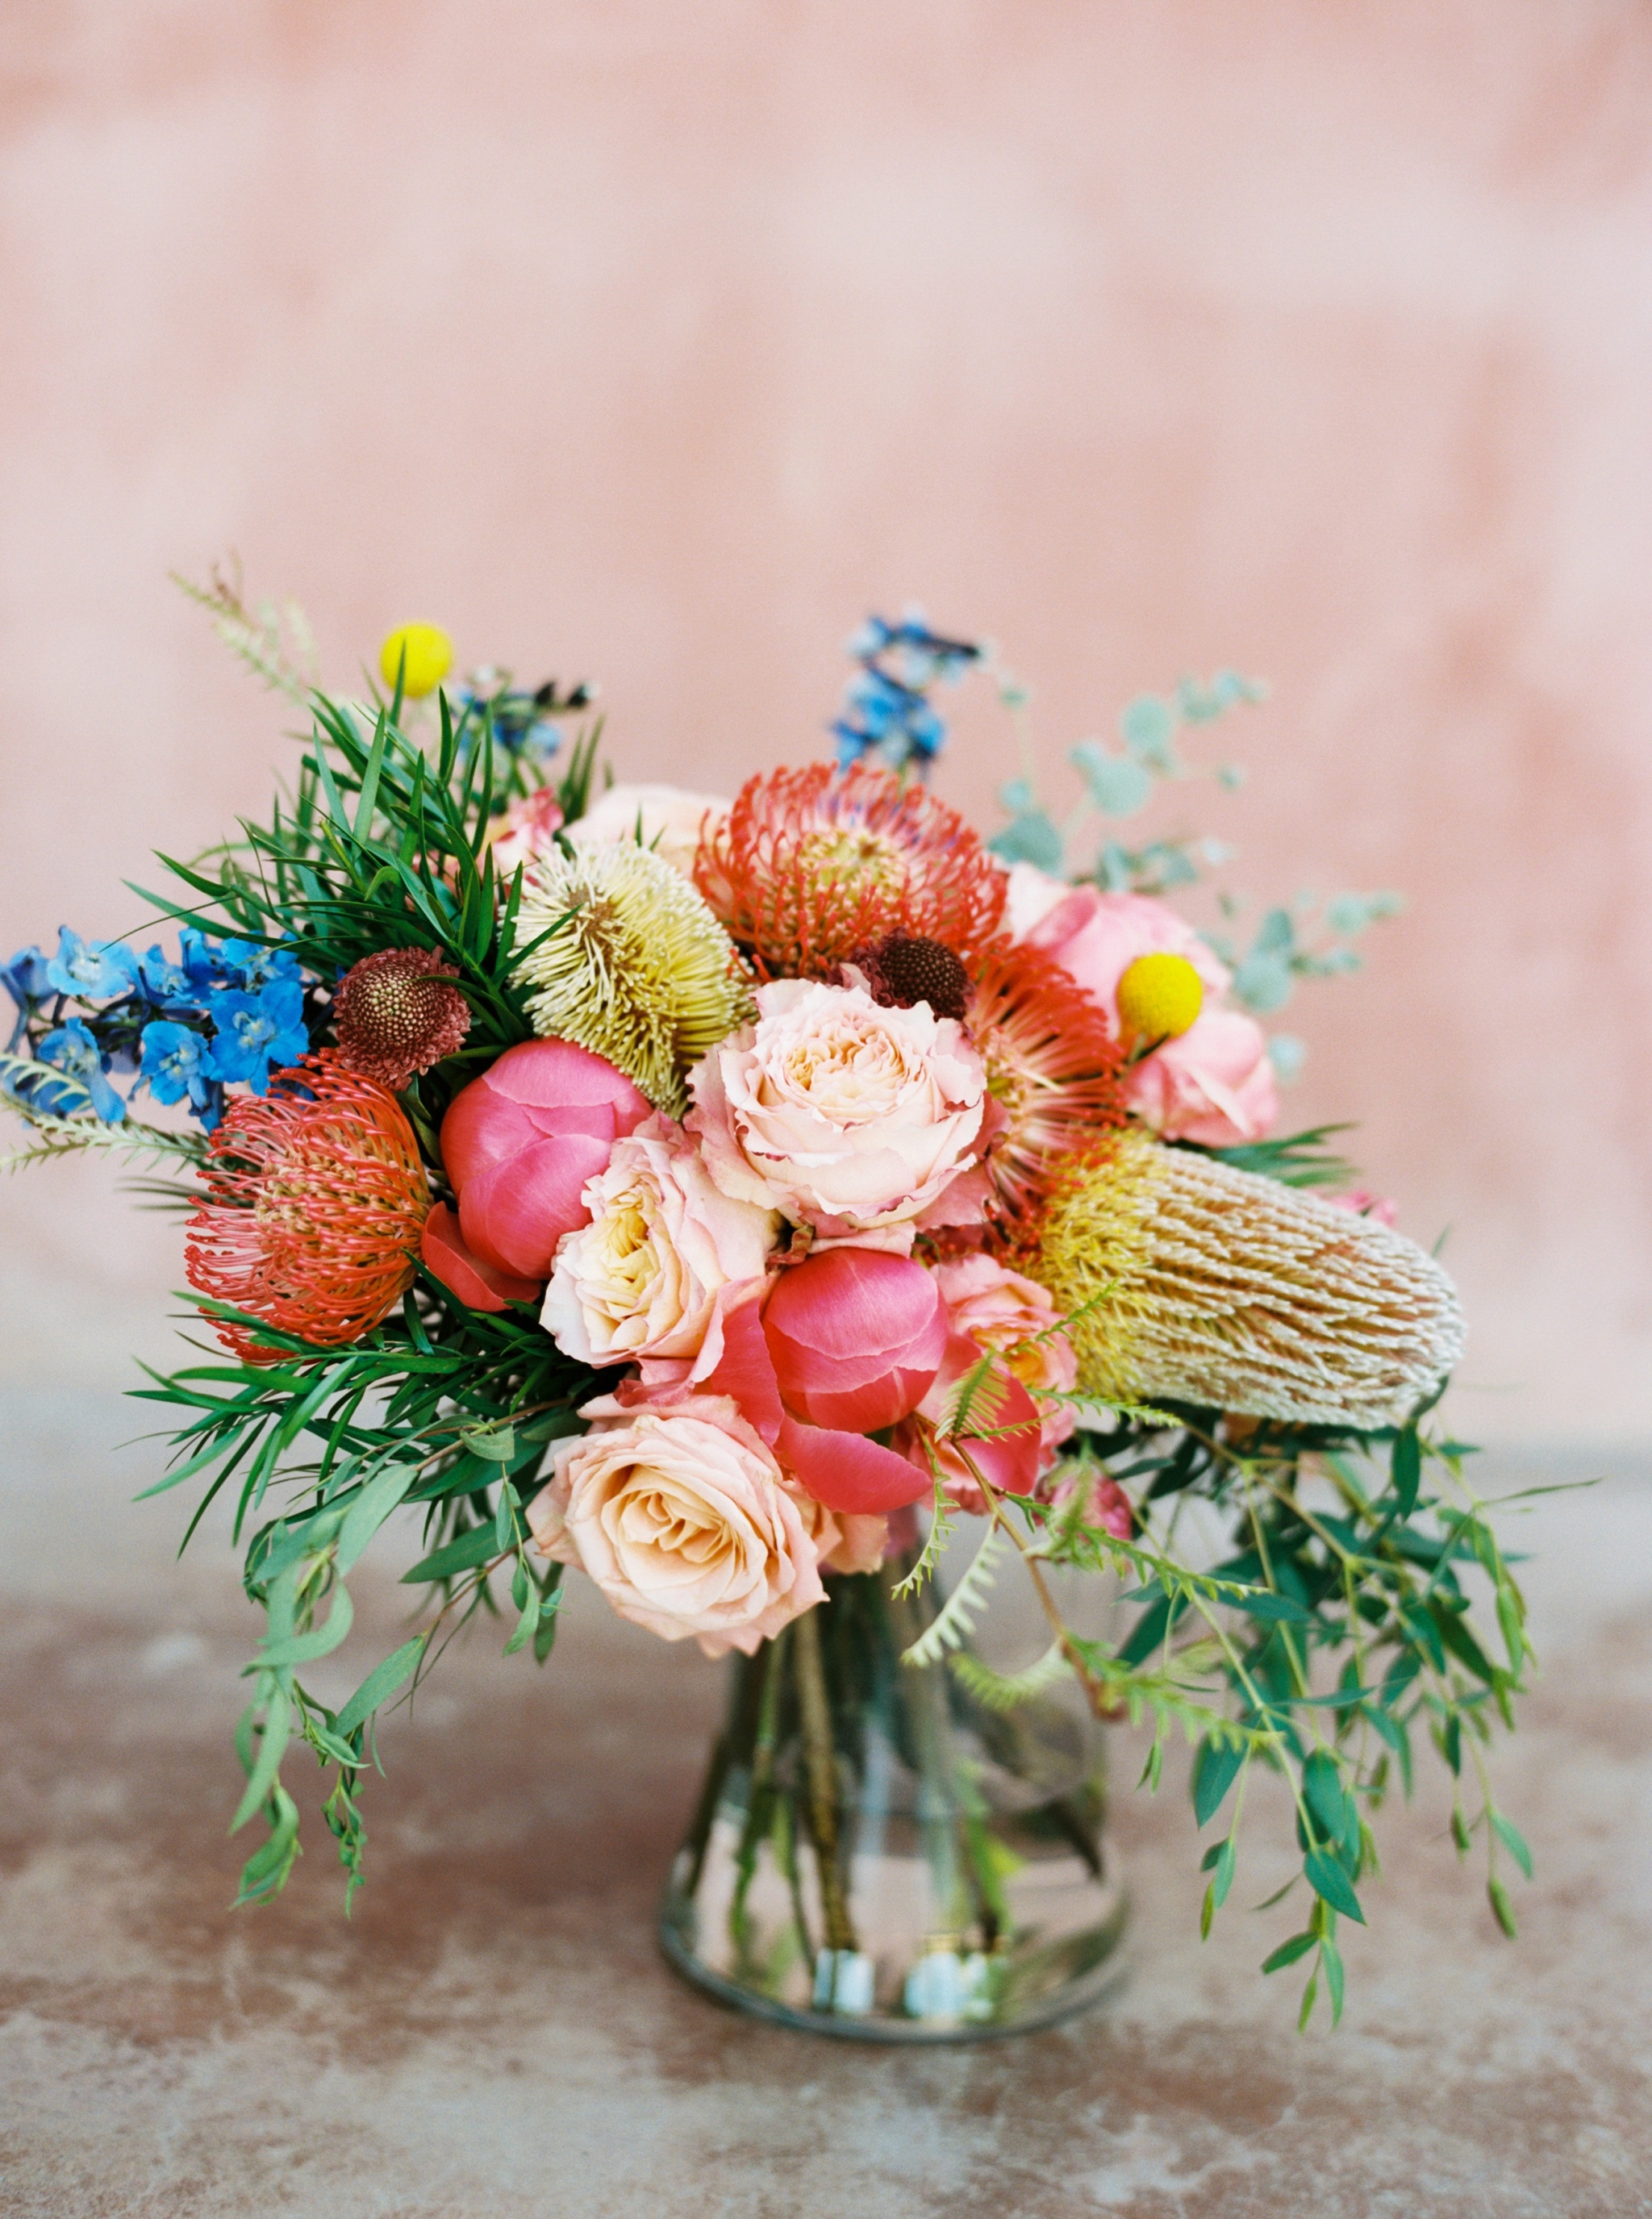 The most beautiful, colorful bouquet  by Top Texas Wedding Photographer Hannah Mayson